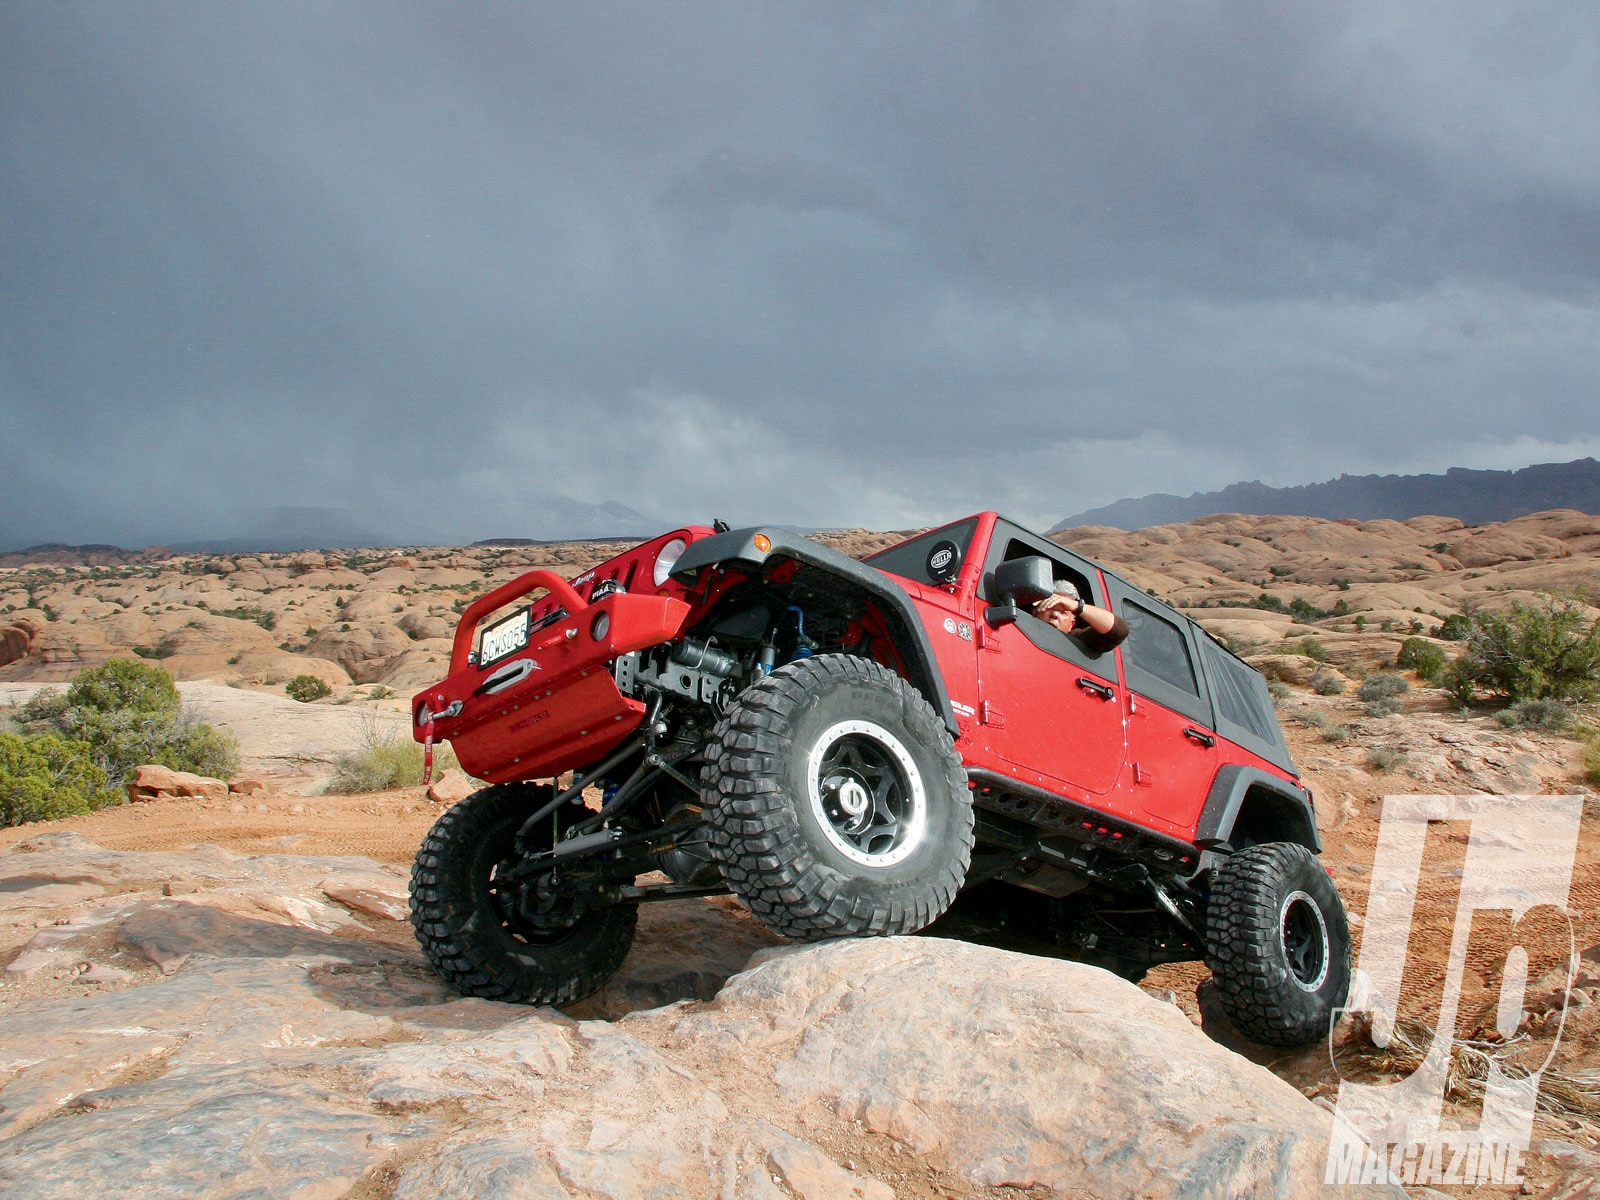 2008 Jeep Jk Unlimited rock Crawling Photo 27845021